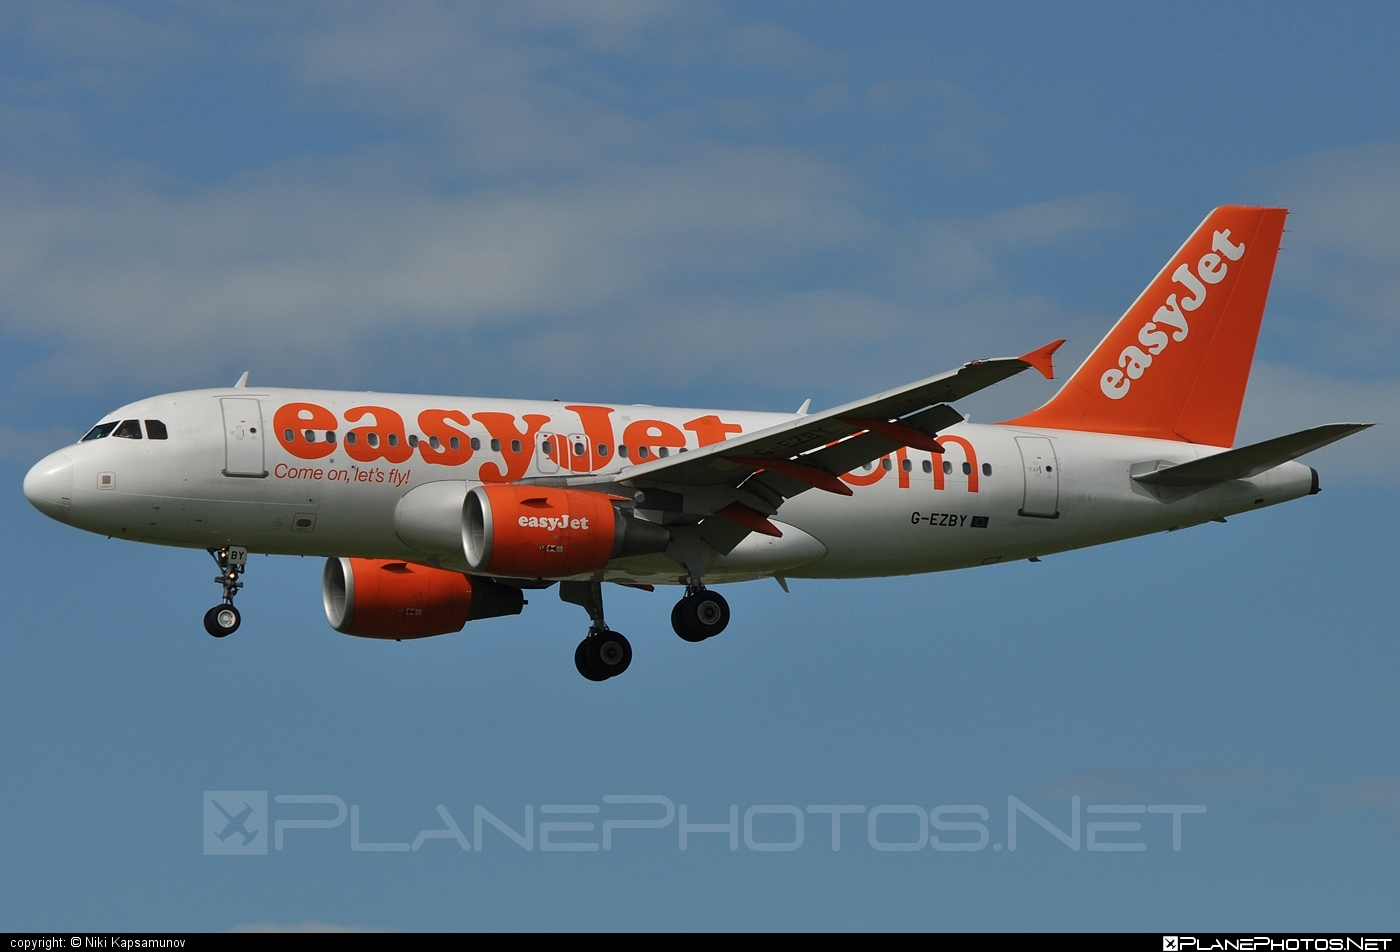 Airbus A319-111 - G-EZBY operated by easyJet #a319 #a320family #airbus #airbus319 #easyjet